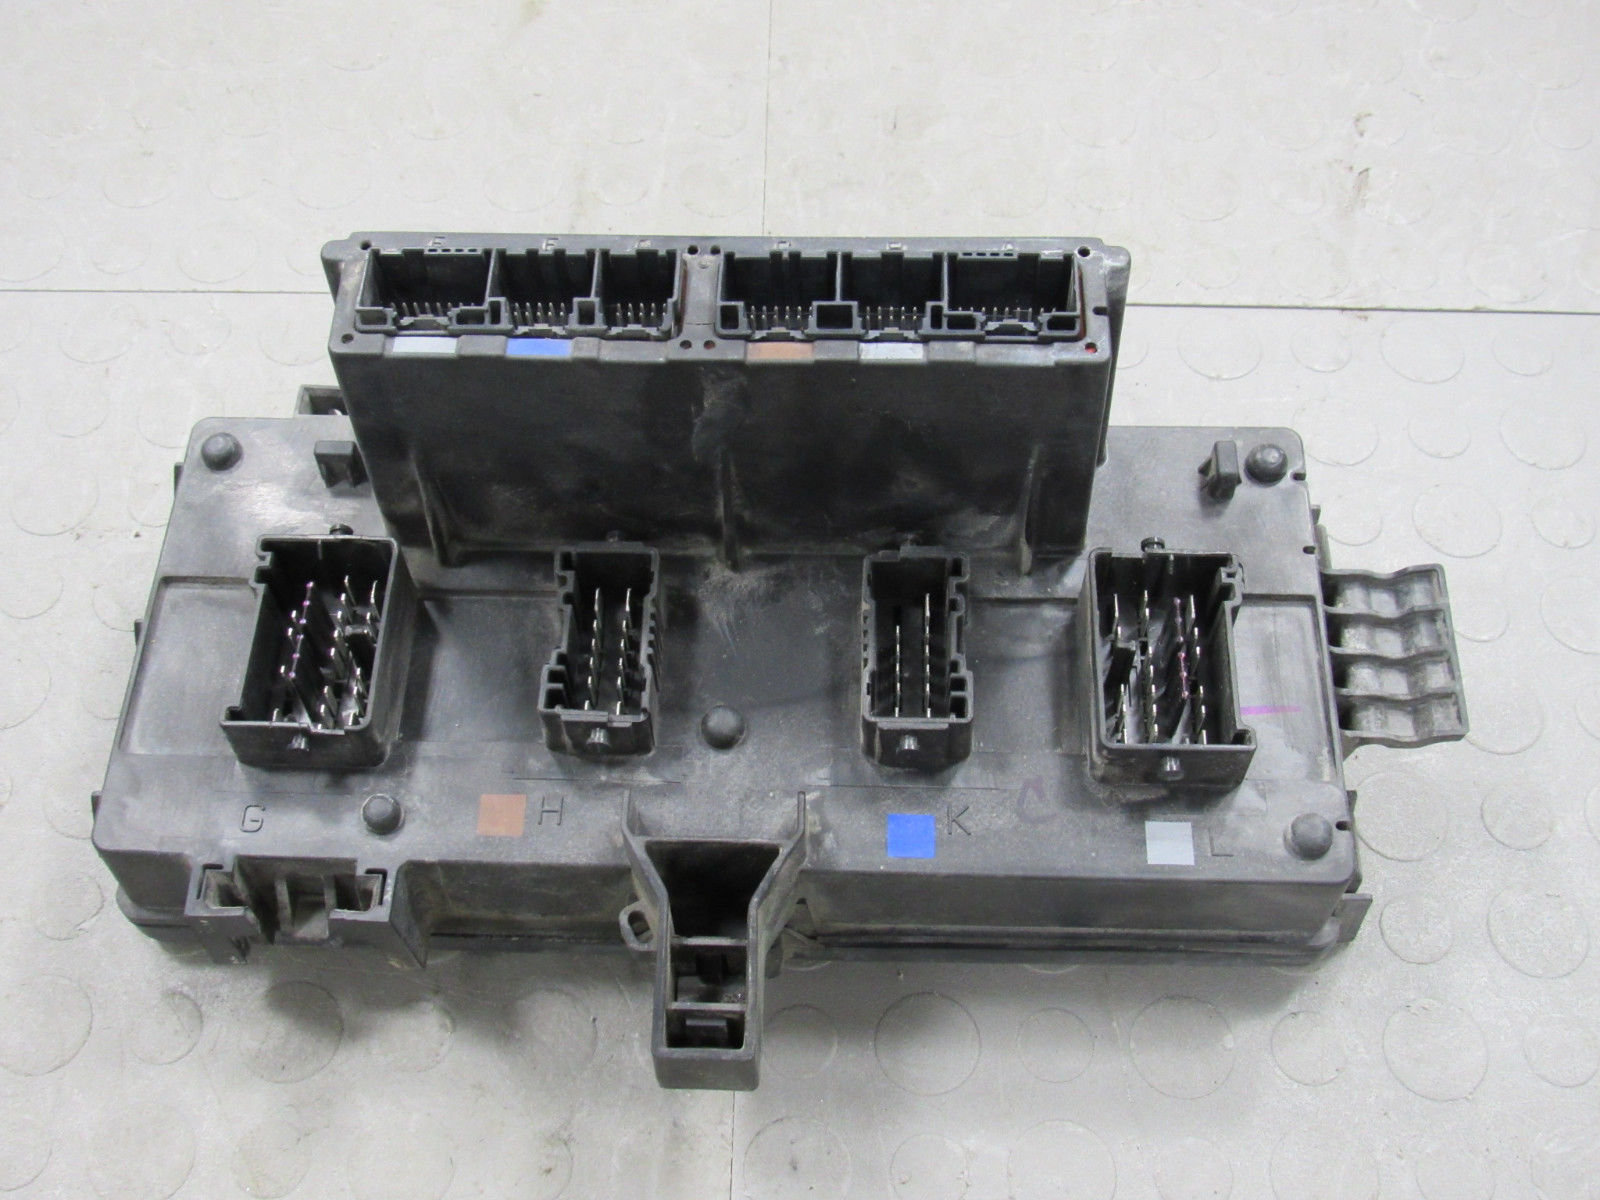 08 09 Dodge Ram Tipm Totally Integrated Power Module Fuse Box 68028002ab G